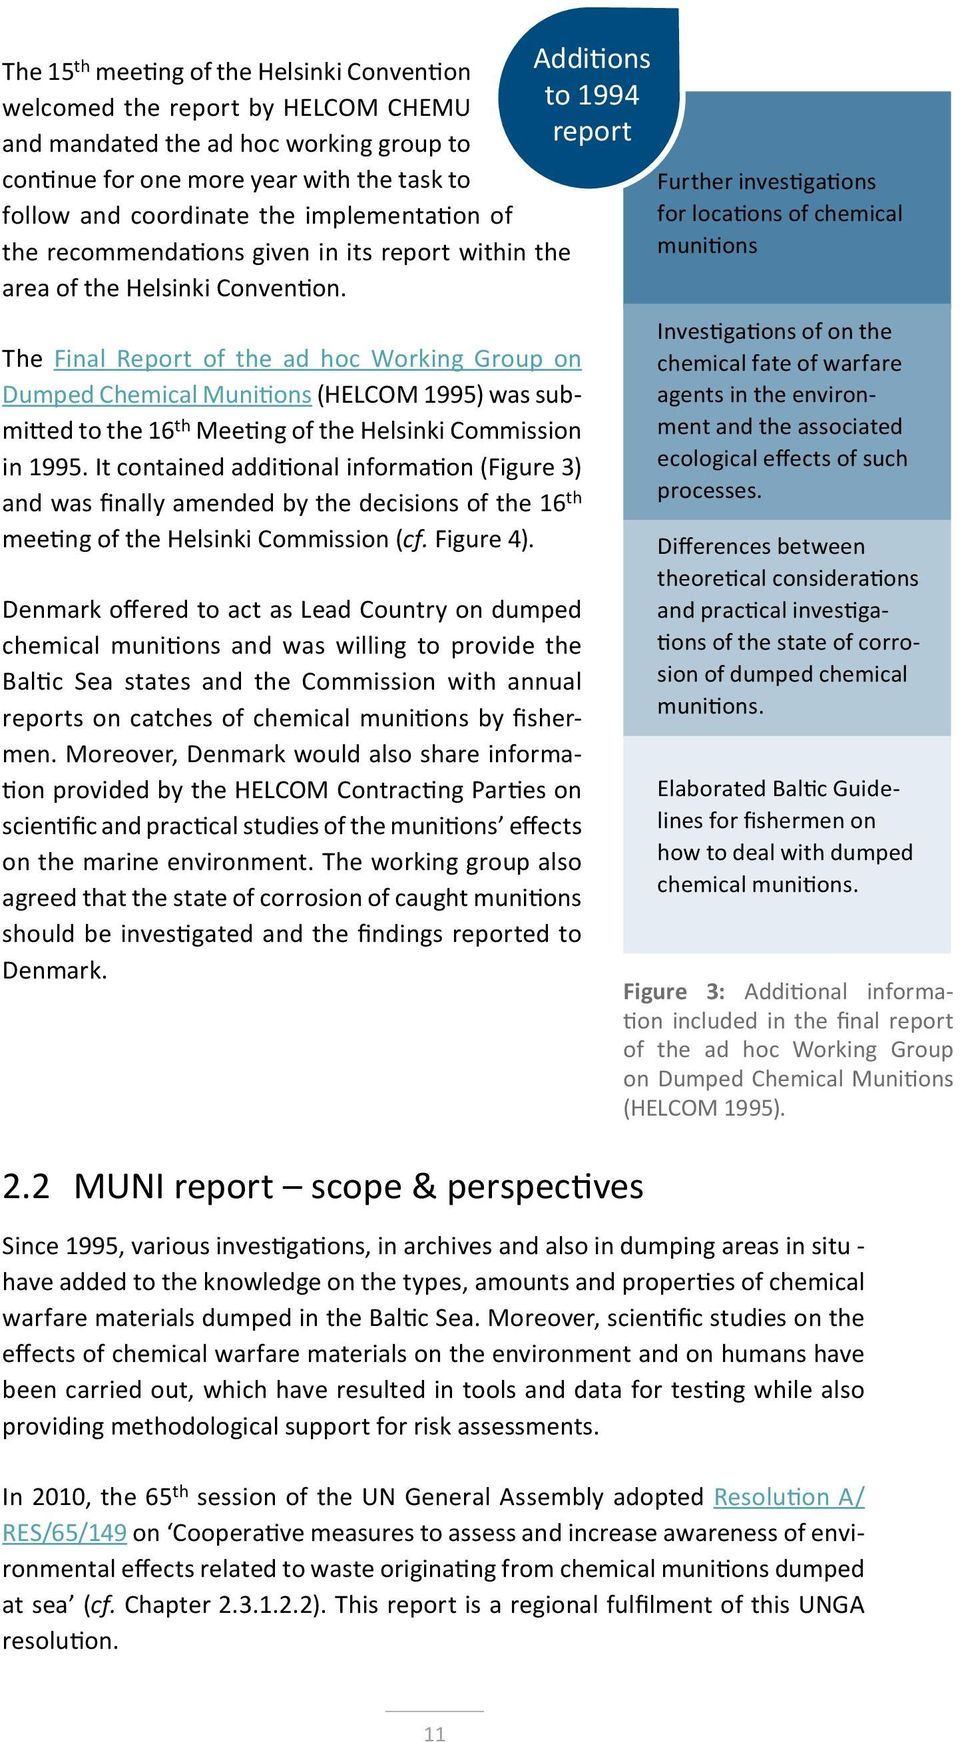 The Final Report of the ad hoc Working Group on Dumped Chemical Munitions (HELCOM 1995) was submitted to the 16 th Meeting of the Helsinki Commission in 1995.